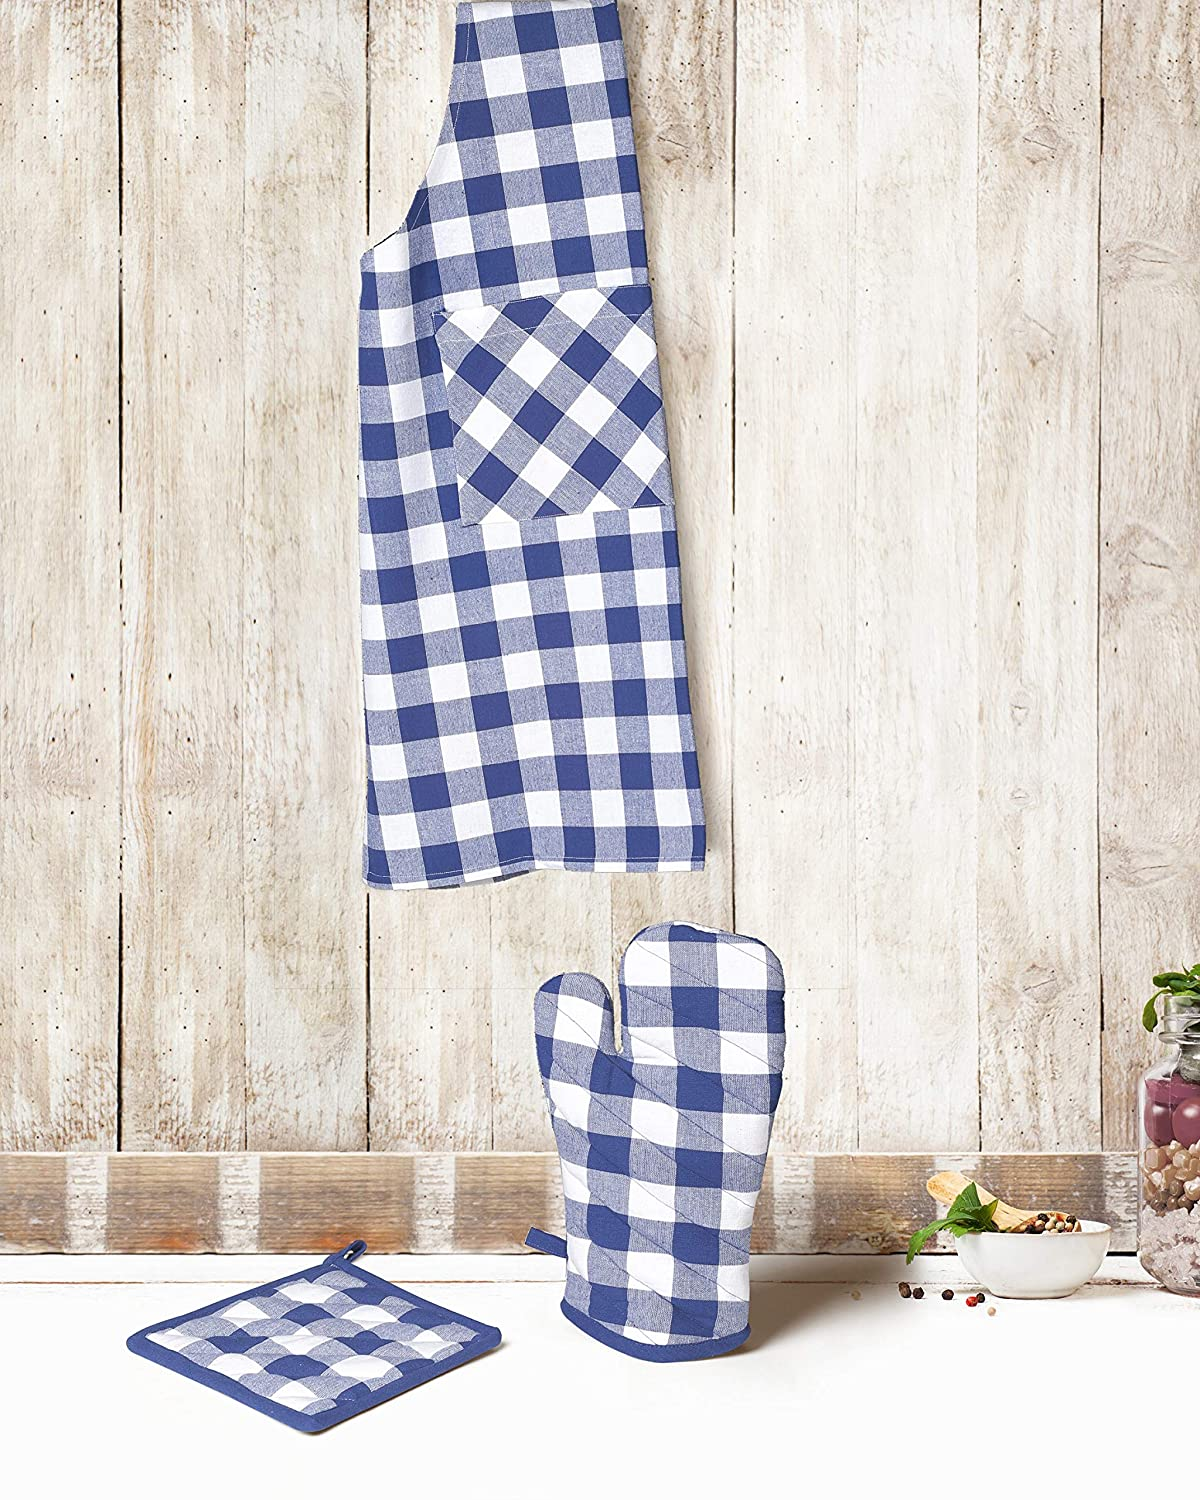 Cotton Clinic Gingham Buffalo Check Pot Holders and Oven Mitts Cotton Set of 4 Navy White Heat Resistant and Washable Oven Mitts and Pot Holders Sets for Men and Women